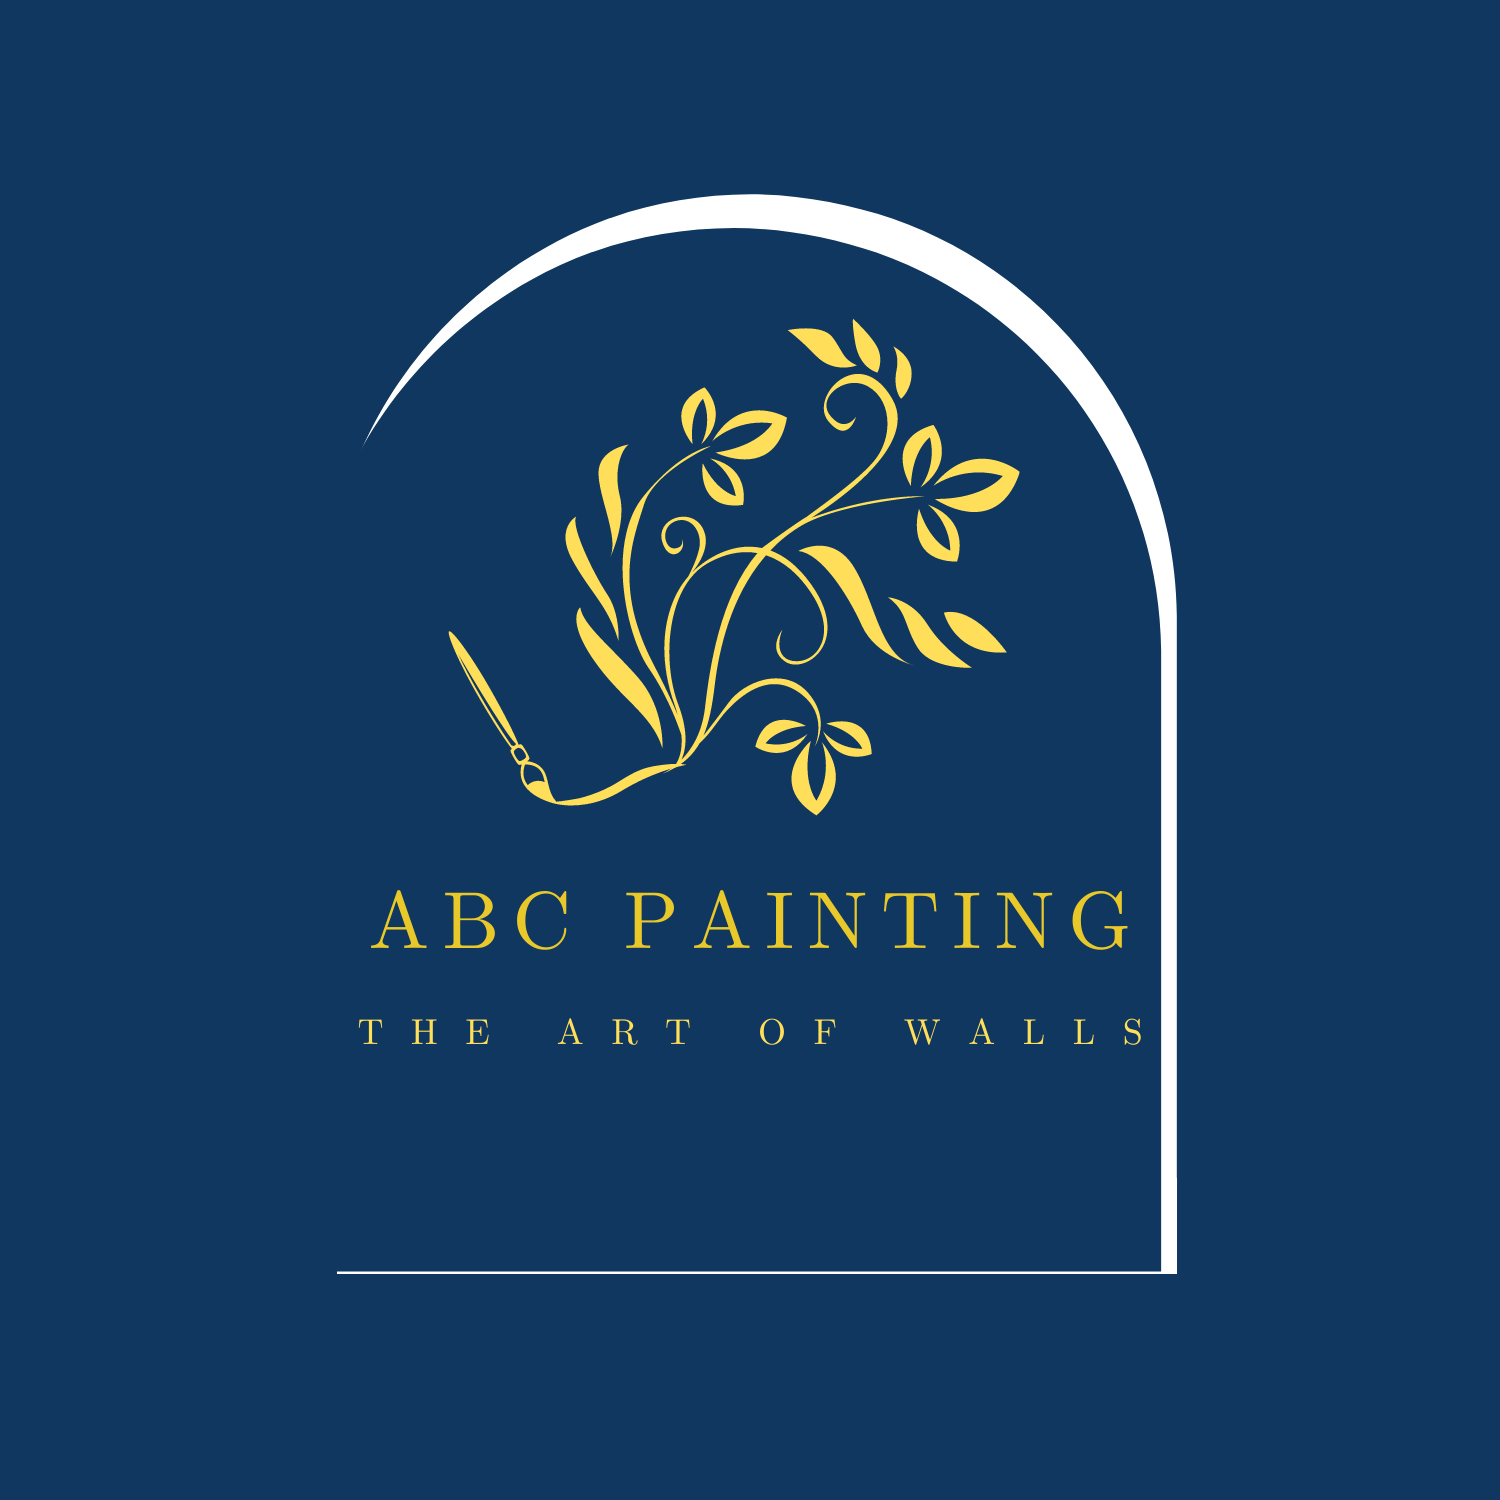 ABC Painting - The Art of Walls